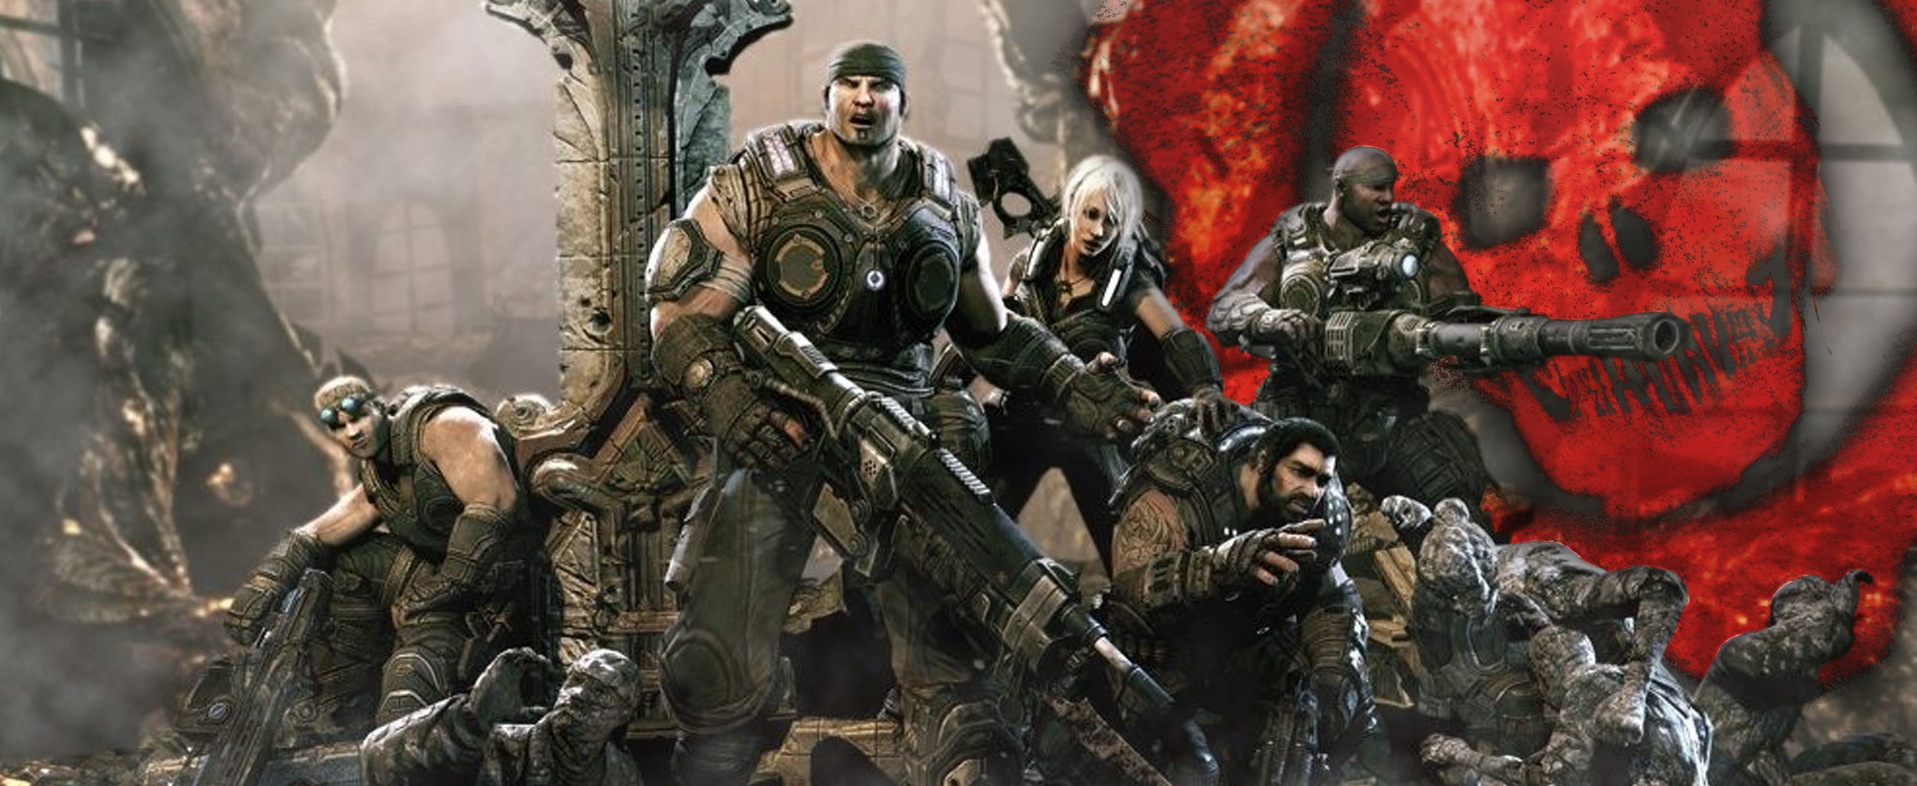 gears of war 3 achievement guide